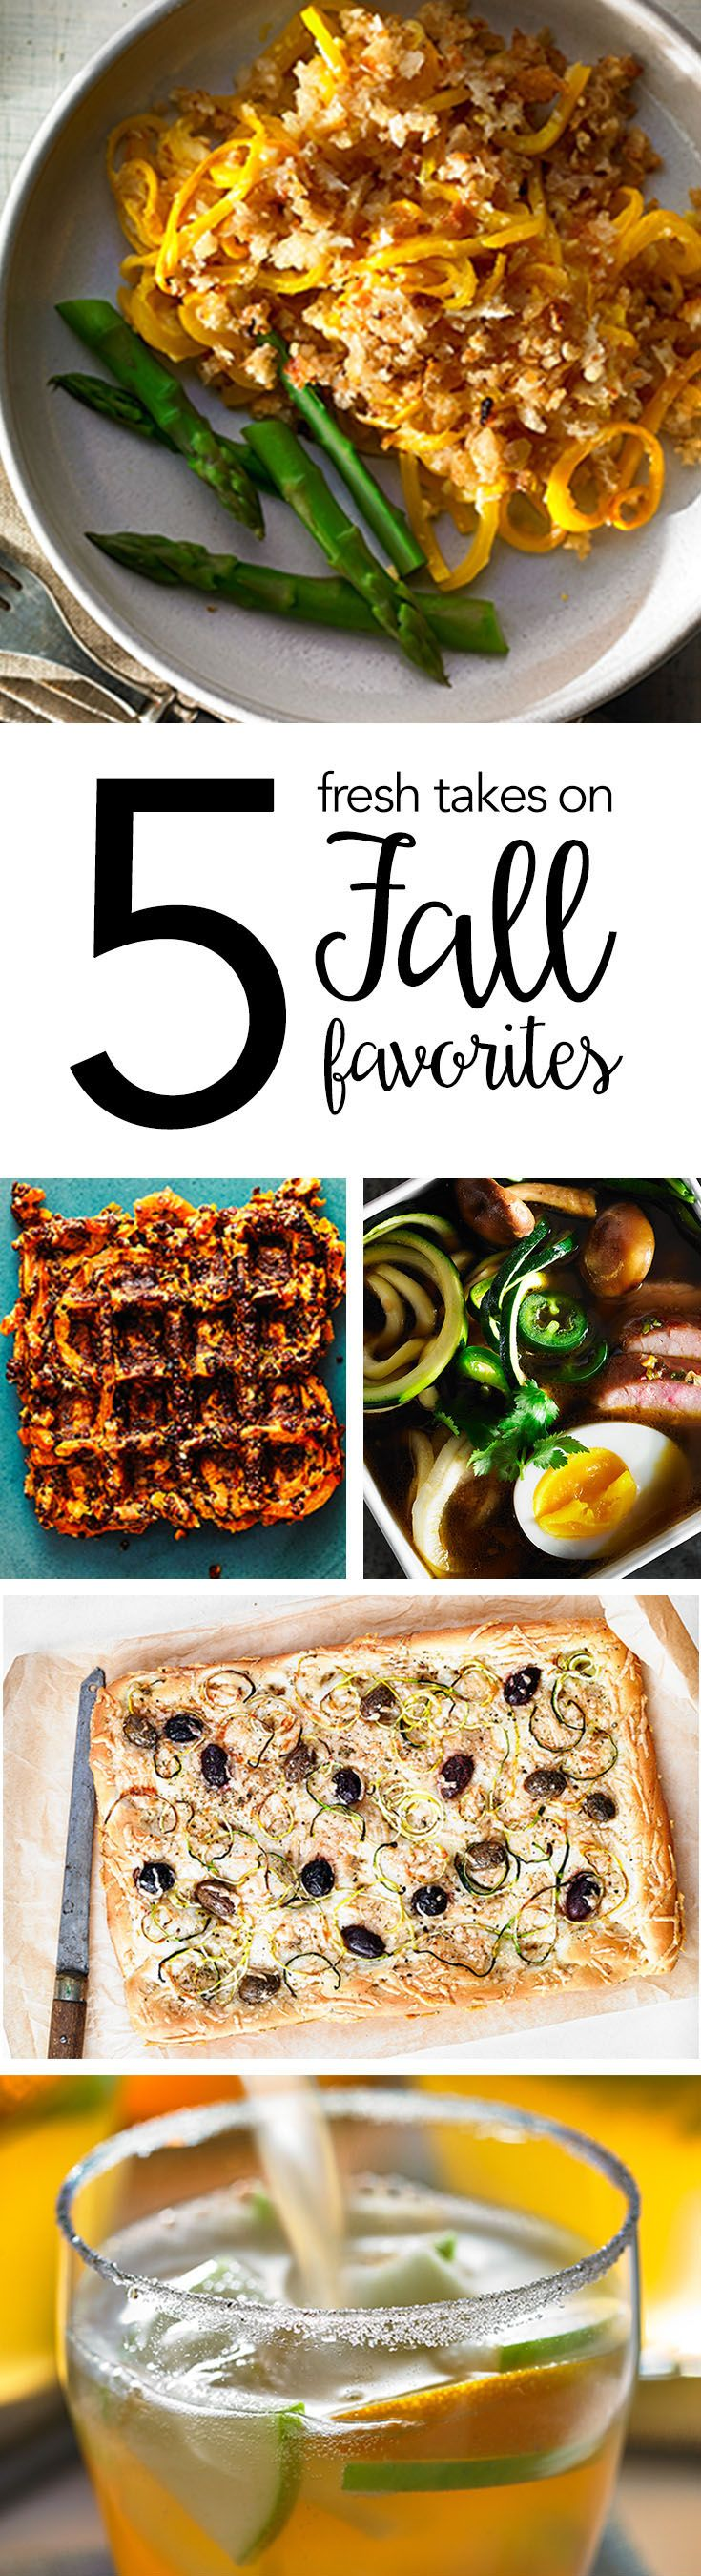 133 Best Spiralizer Recipes Images On Pinterest Cooking